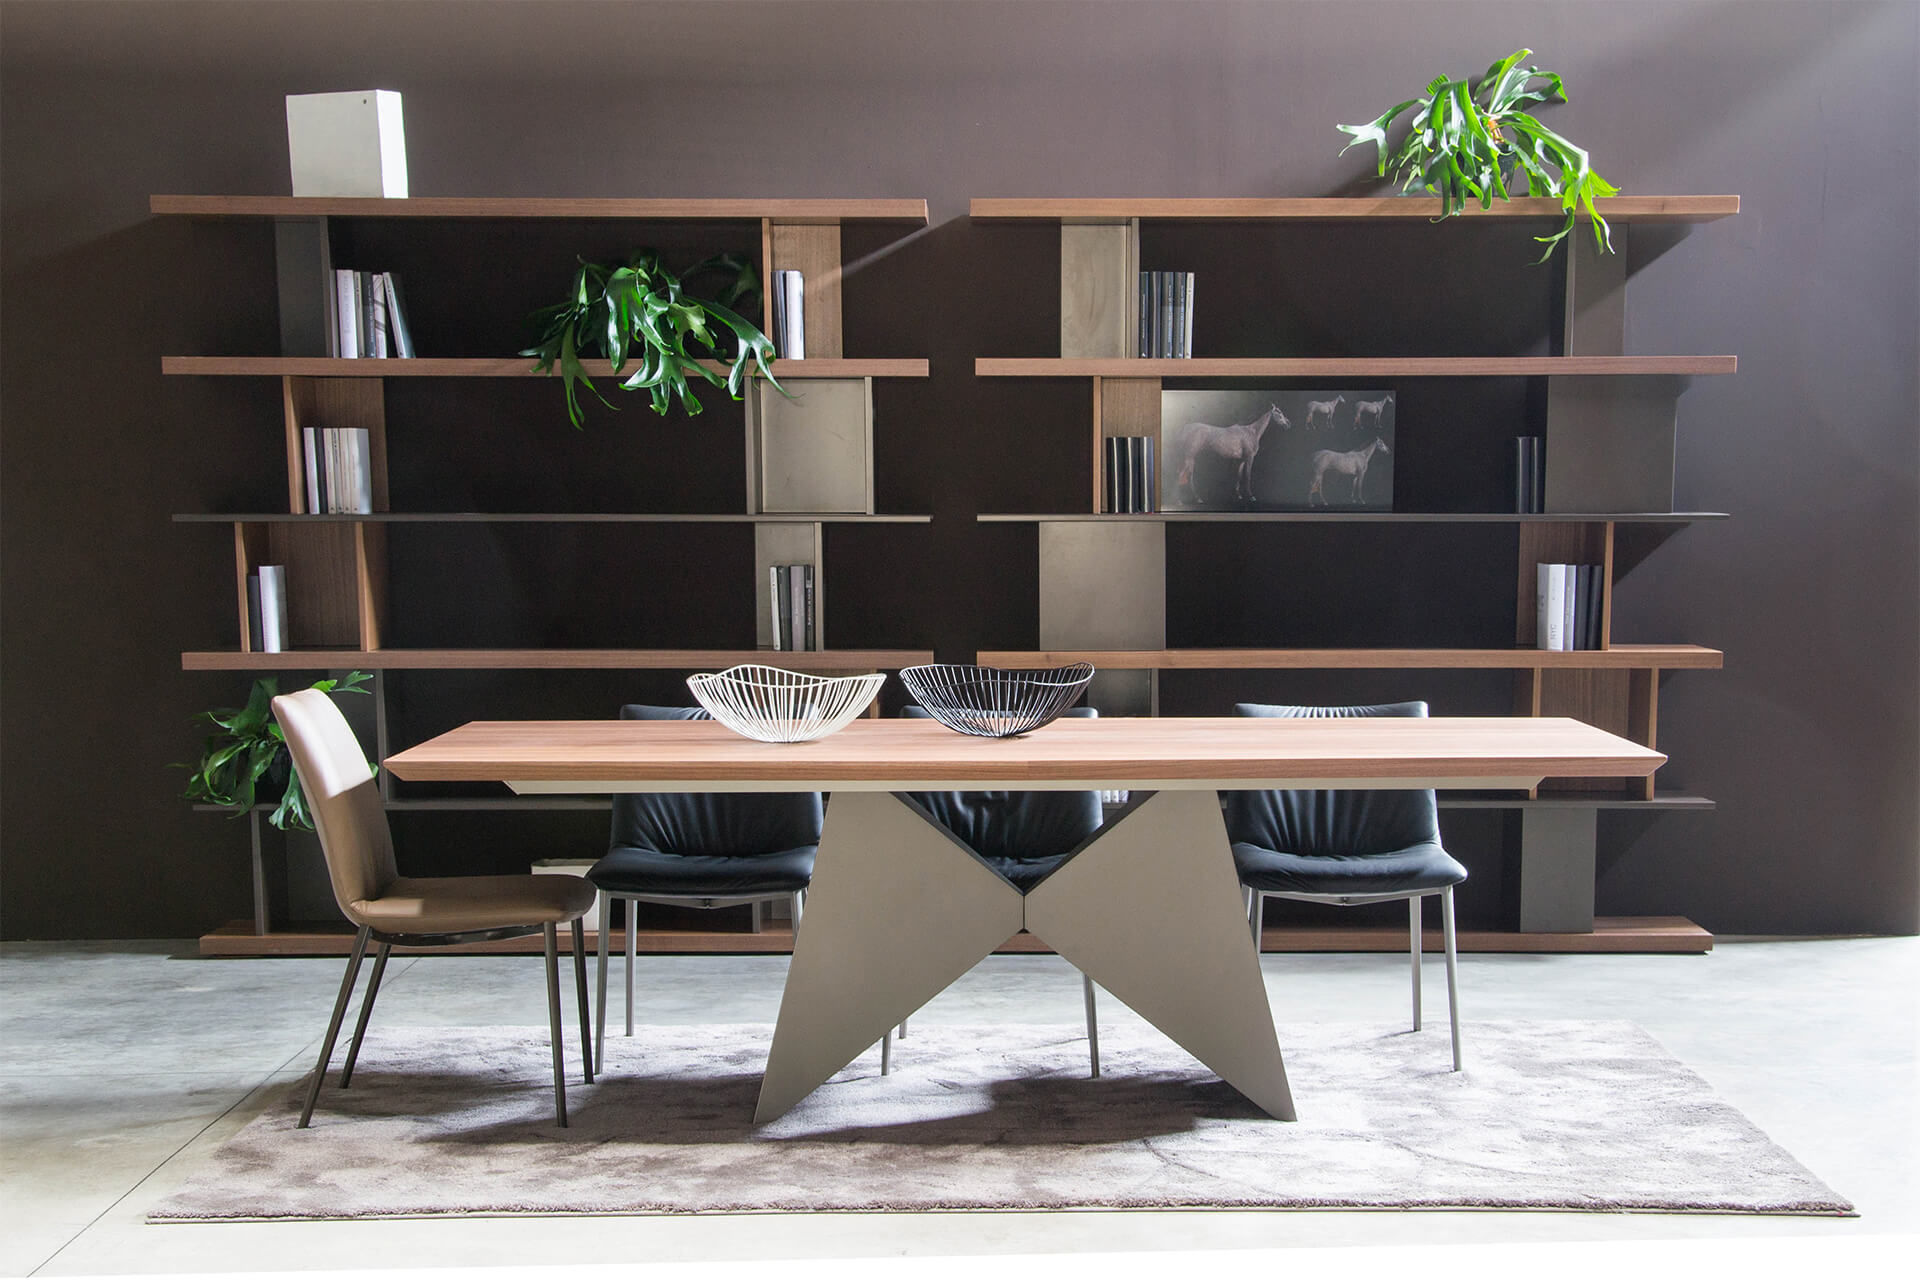 absolute preview the new ronda design showroom ronda